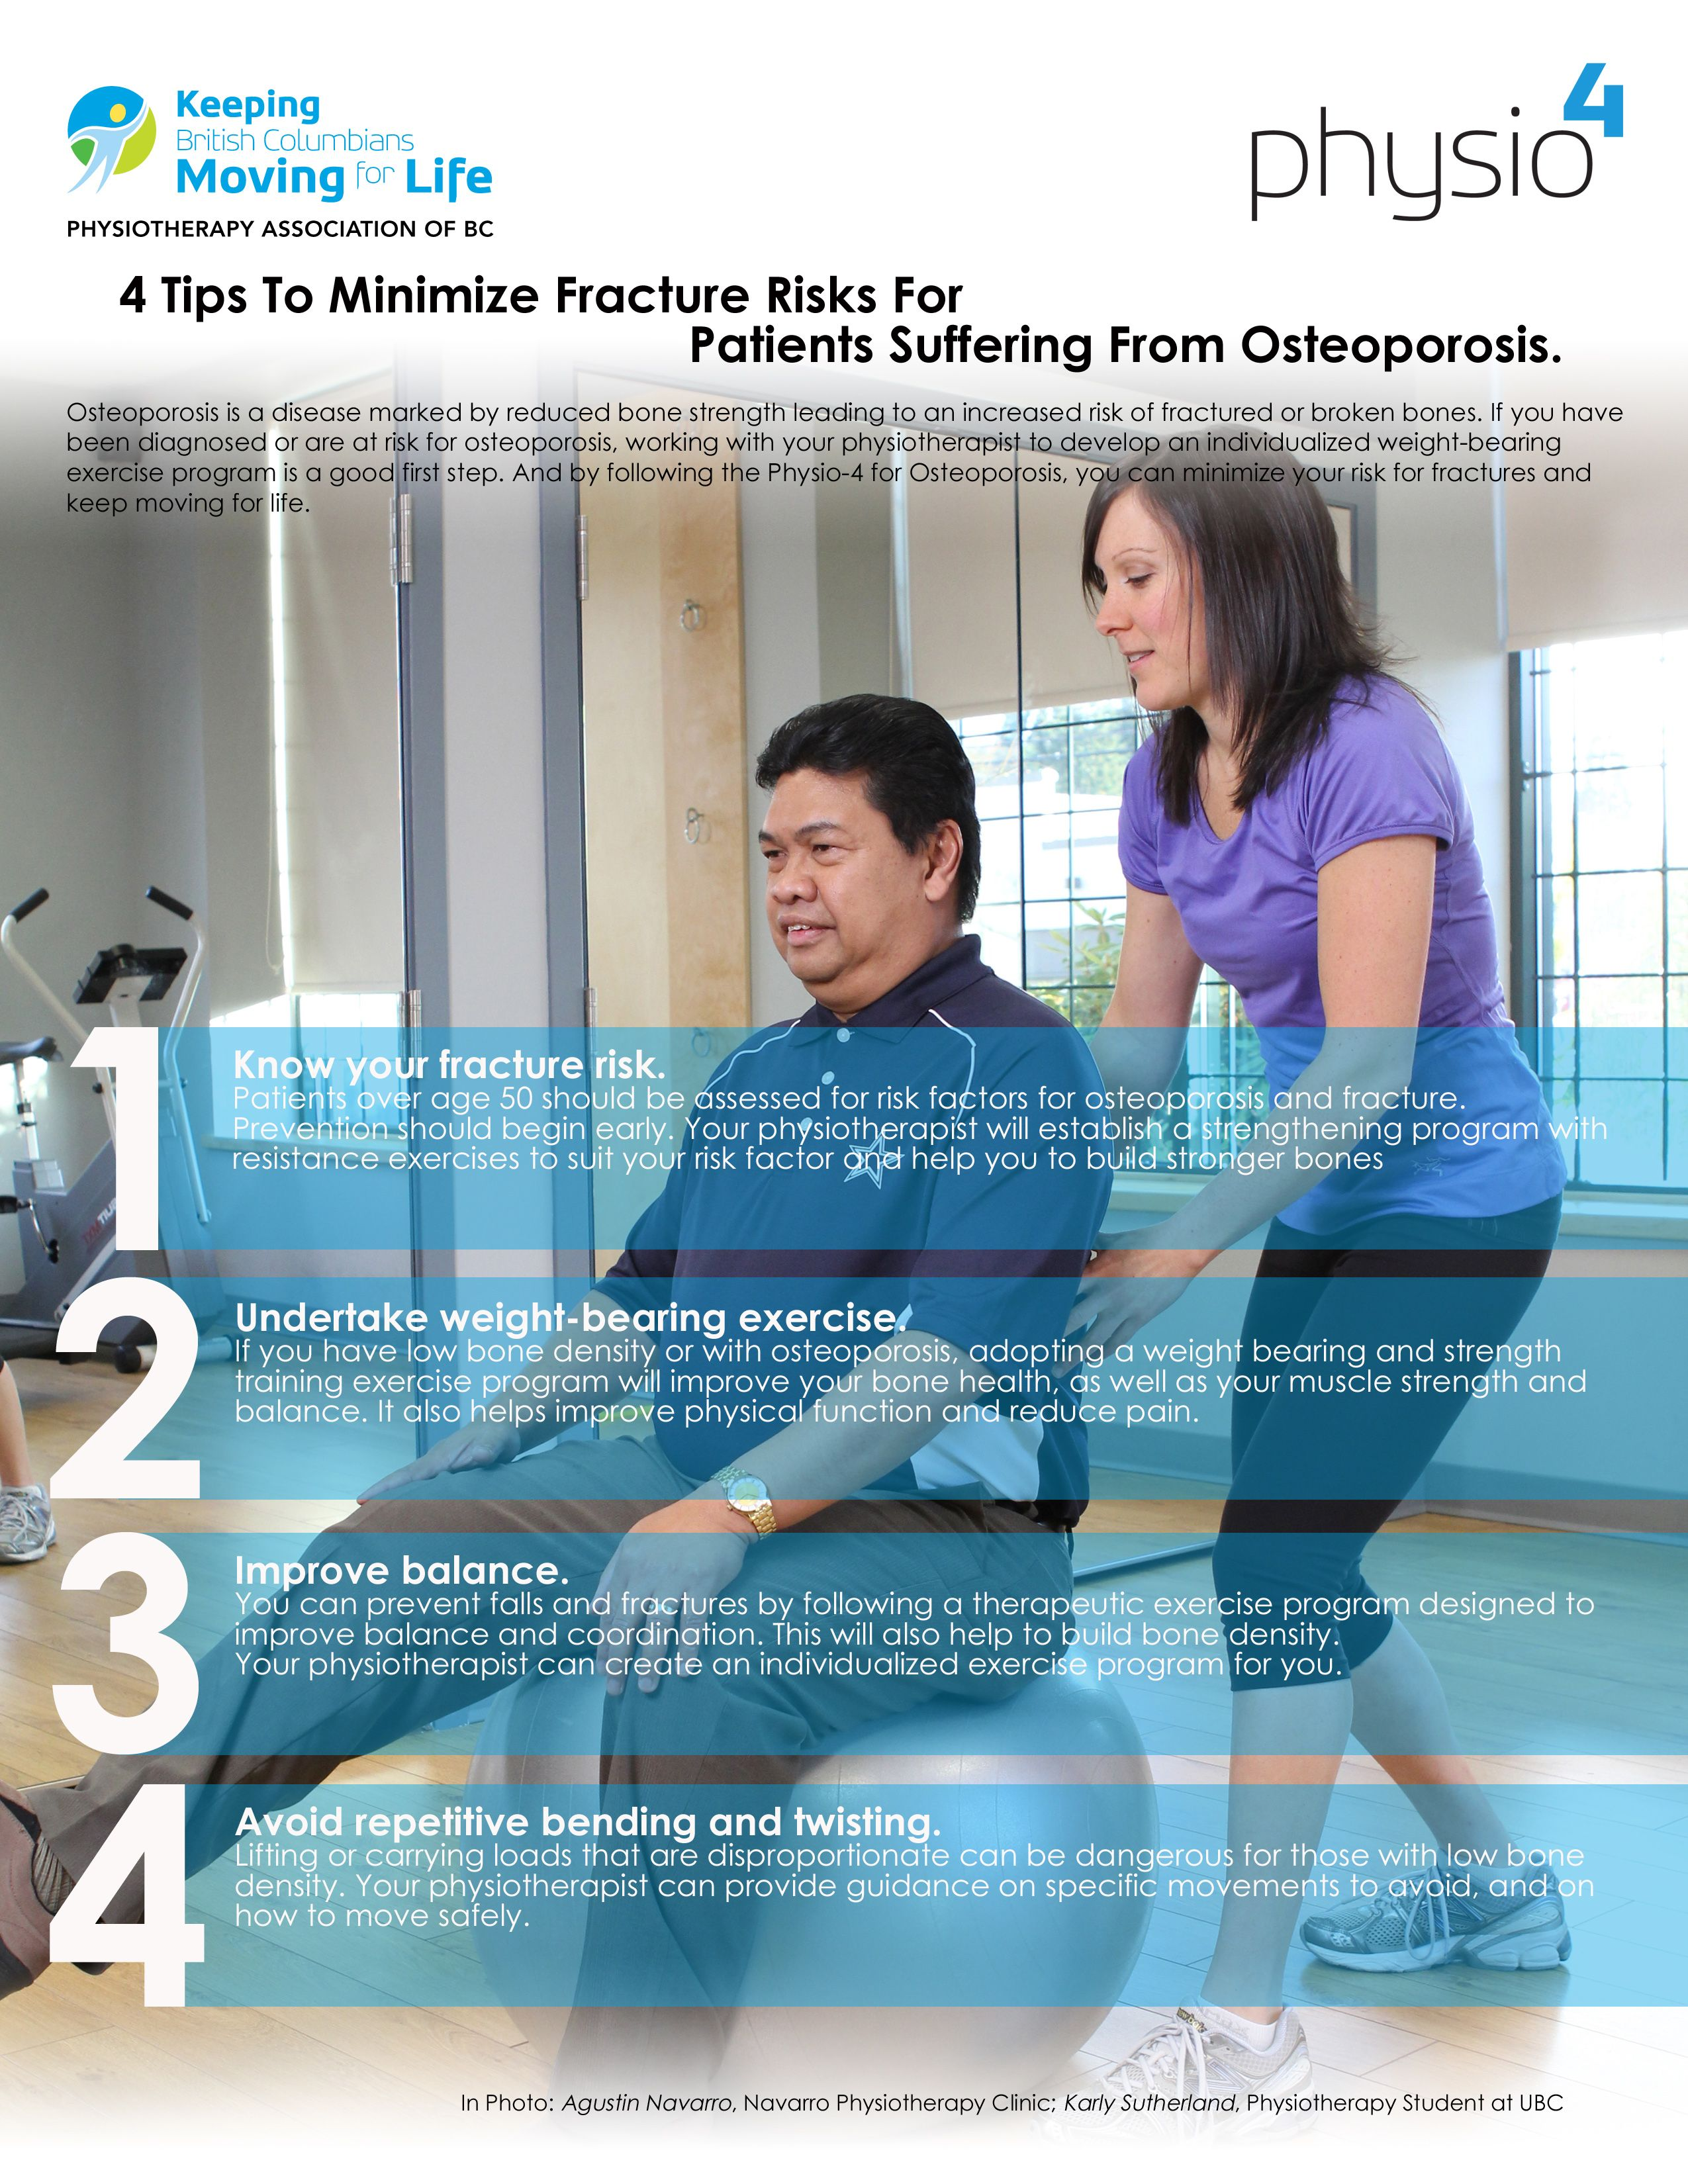 11++ Role of physiotherapy in osteoporosis ideas in 2021